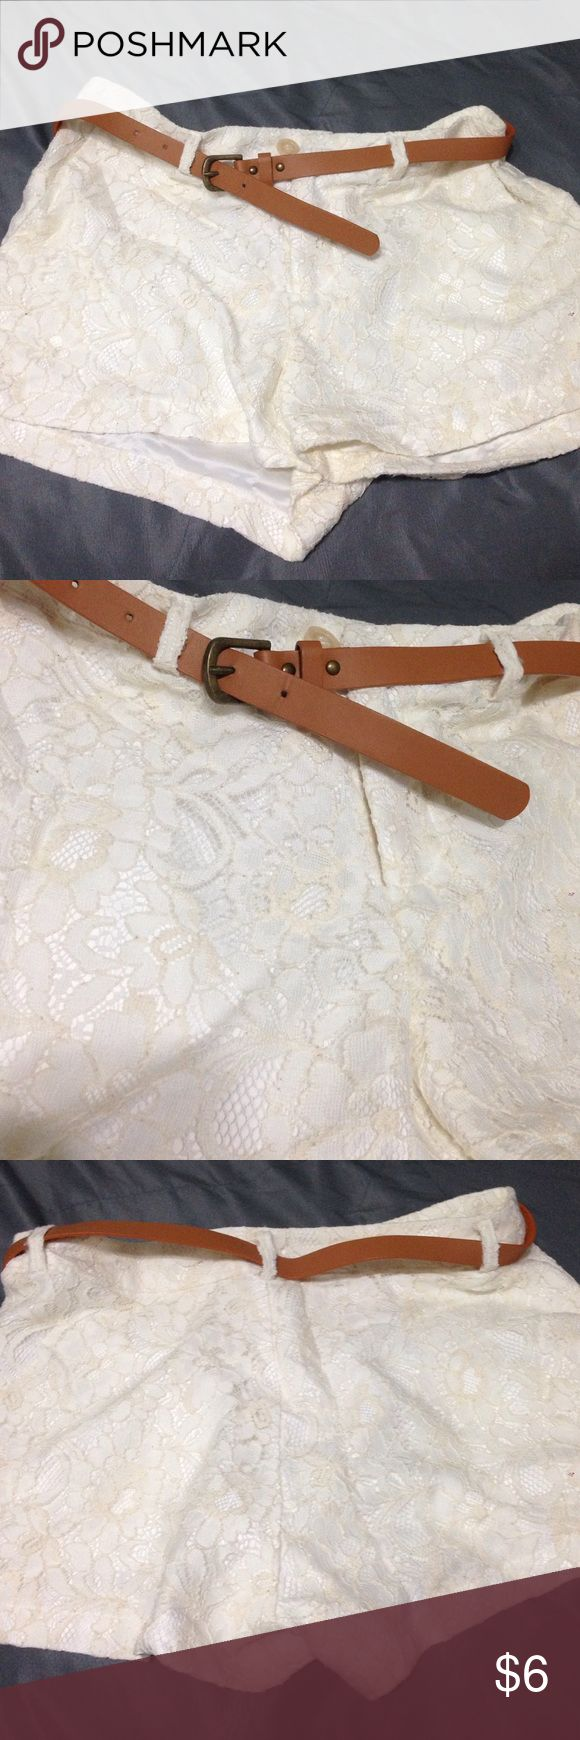 Cream lace shorts with belt Great condition Shorts